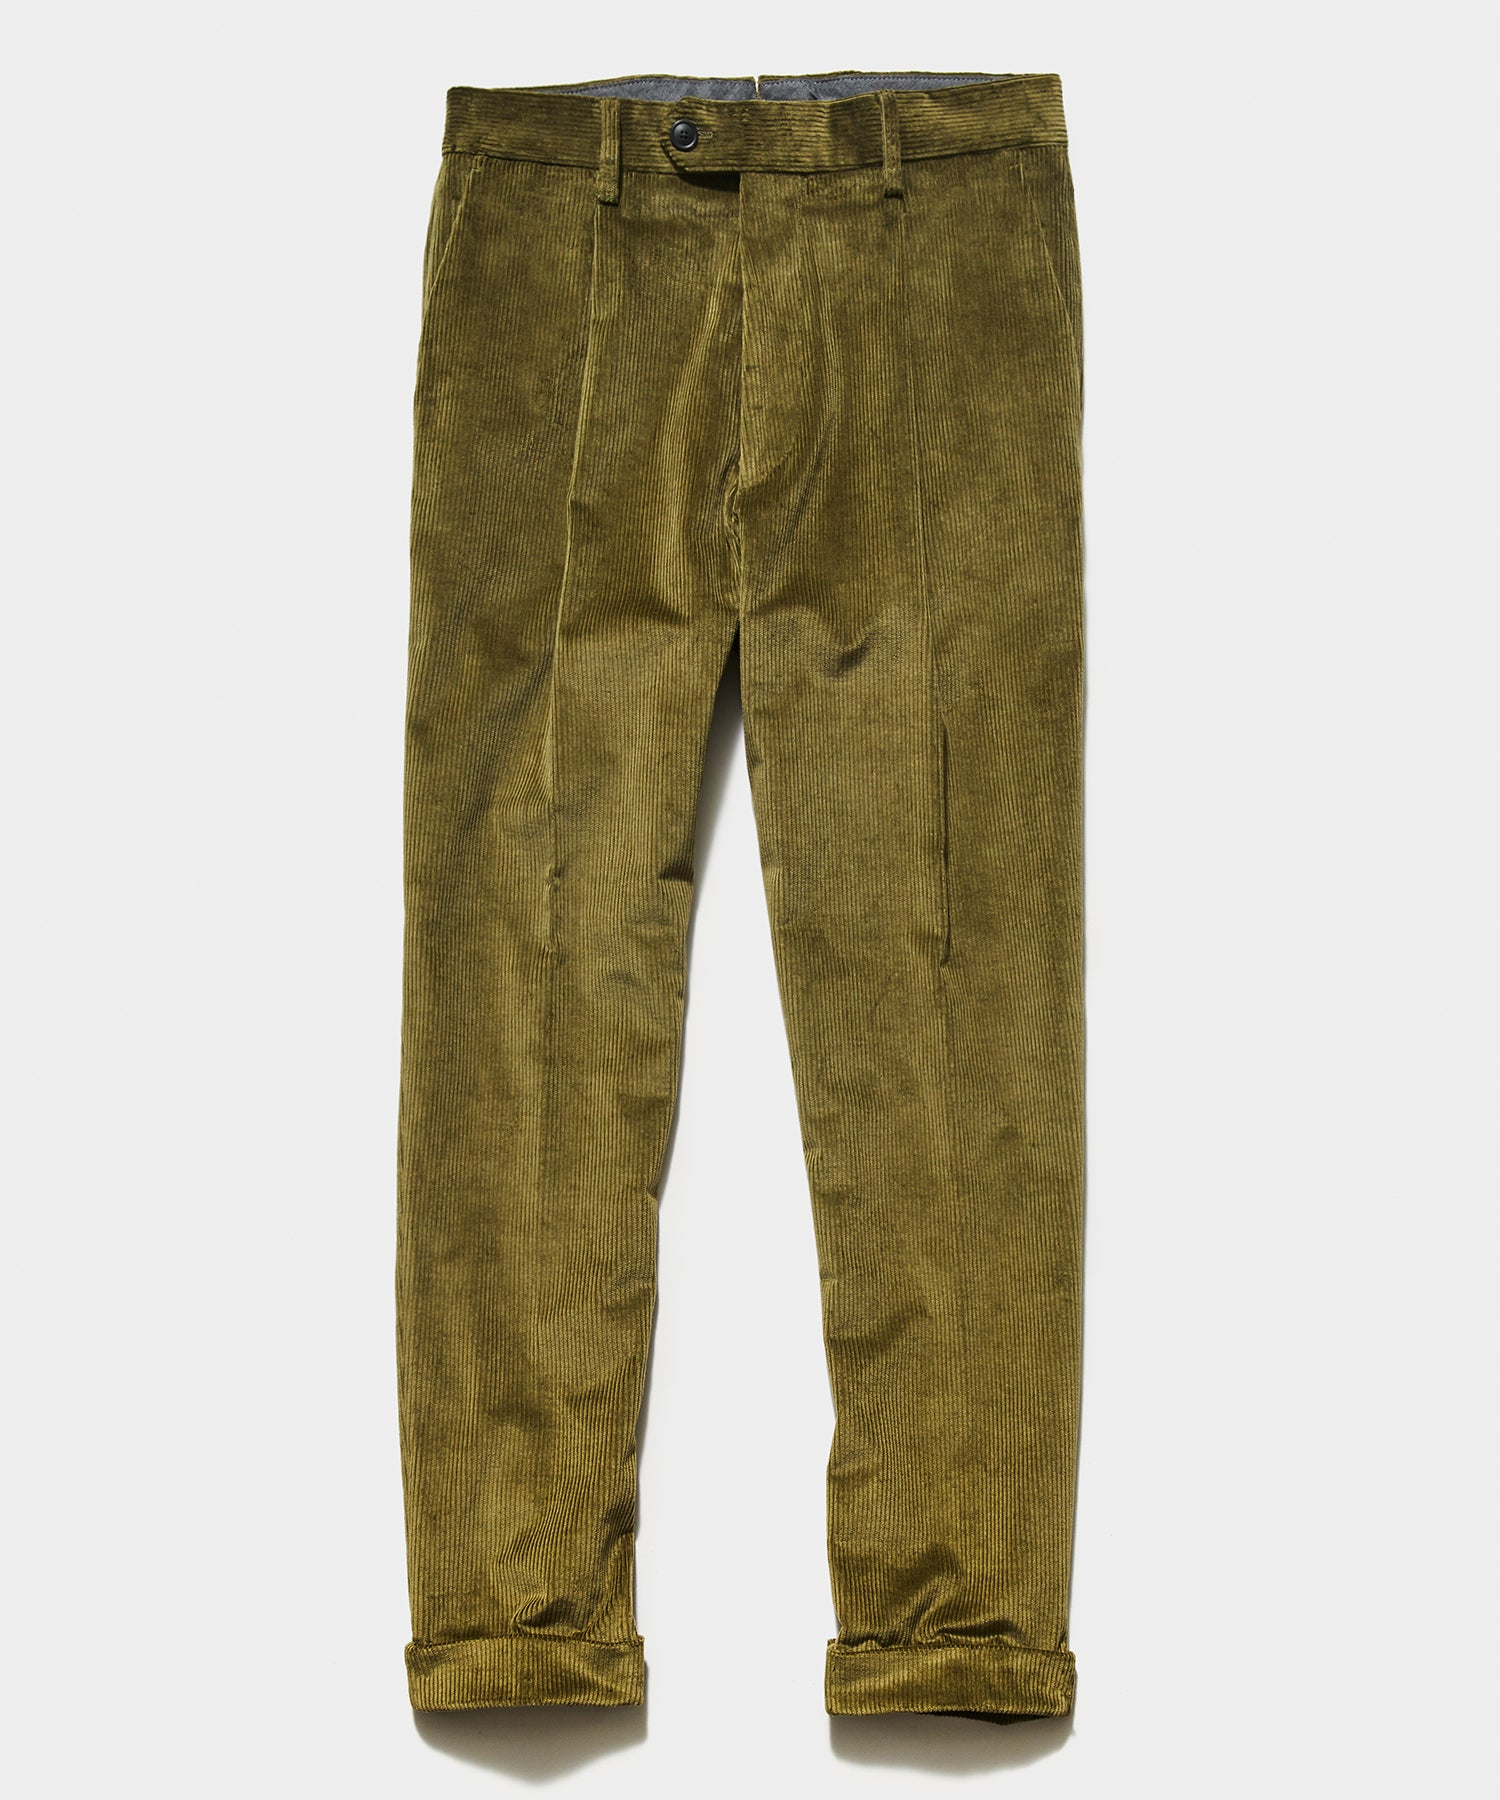 Italian Pleated Cord Madison Trouser in Olive